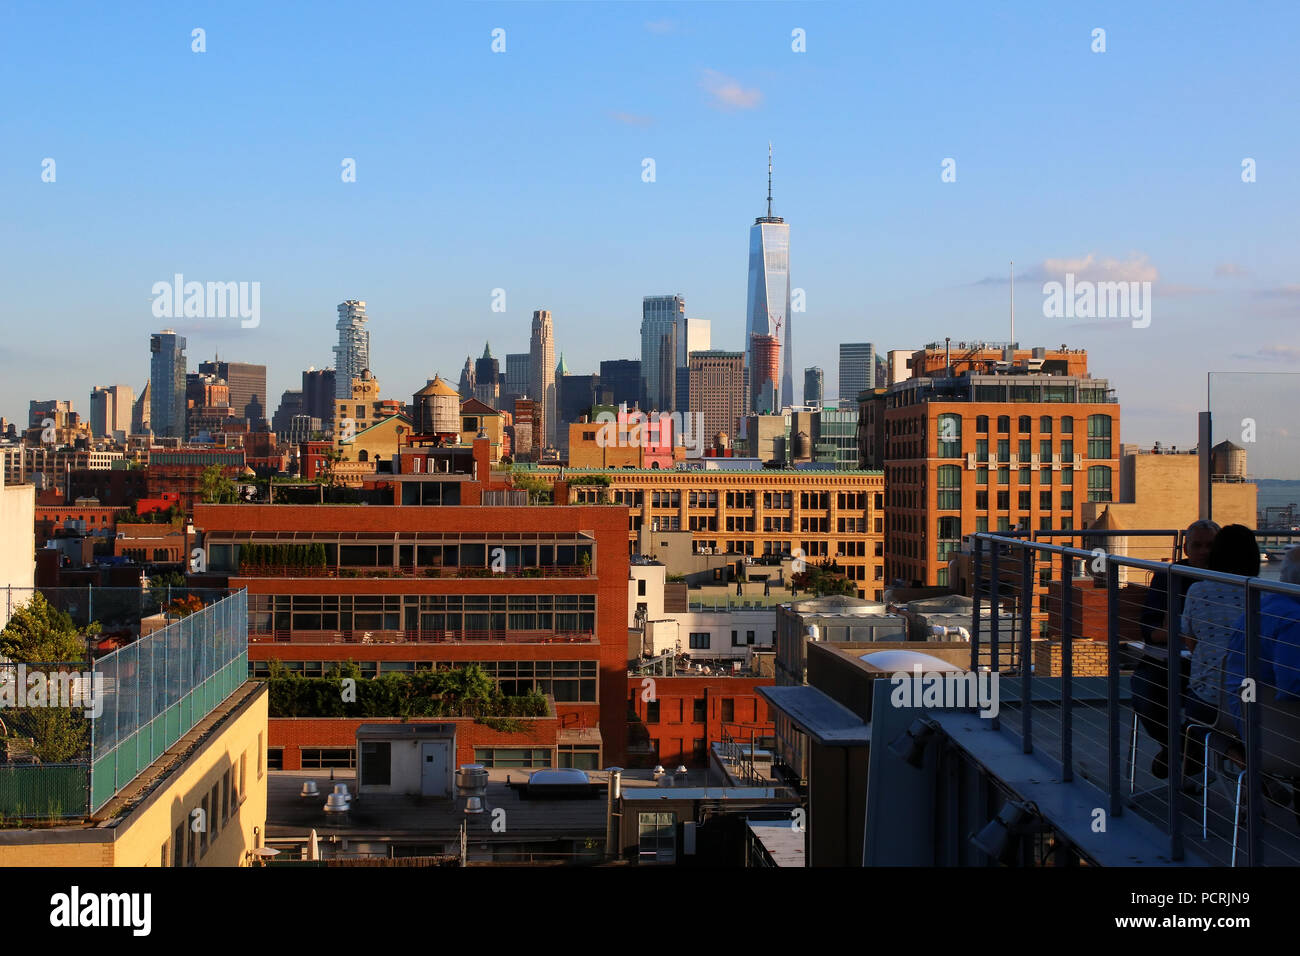 Rooftop view of Lower Manhattan and Financial District skyline, Meatpacking District, Manhattan on JULY 7th, 2017 in New York, USA. Stock Photo